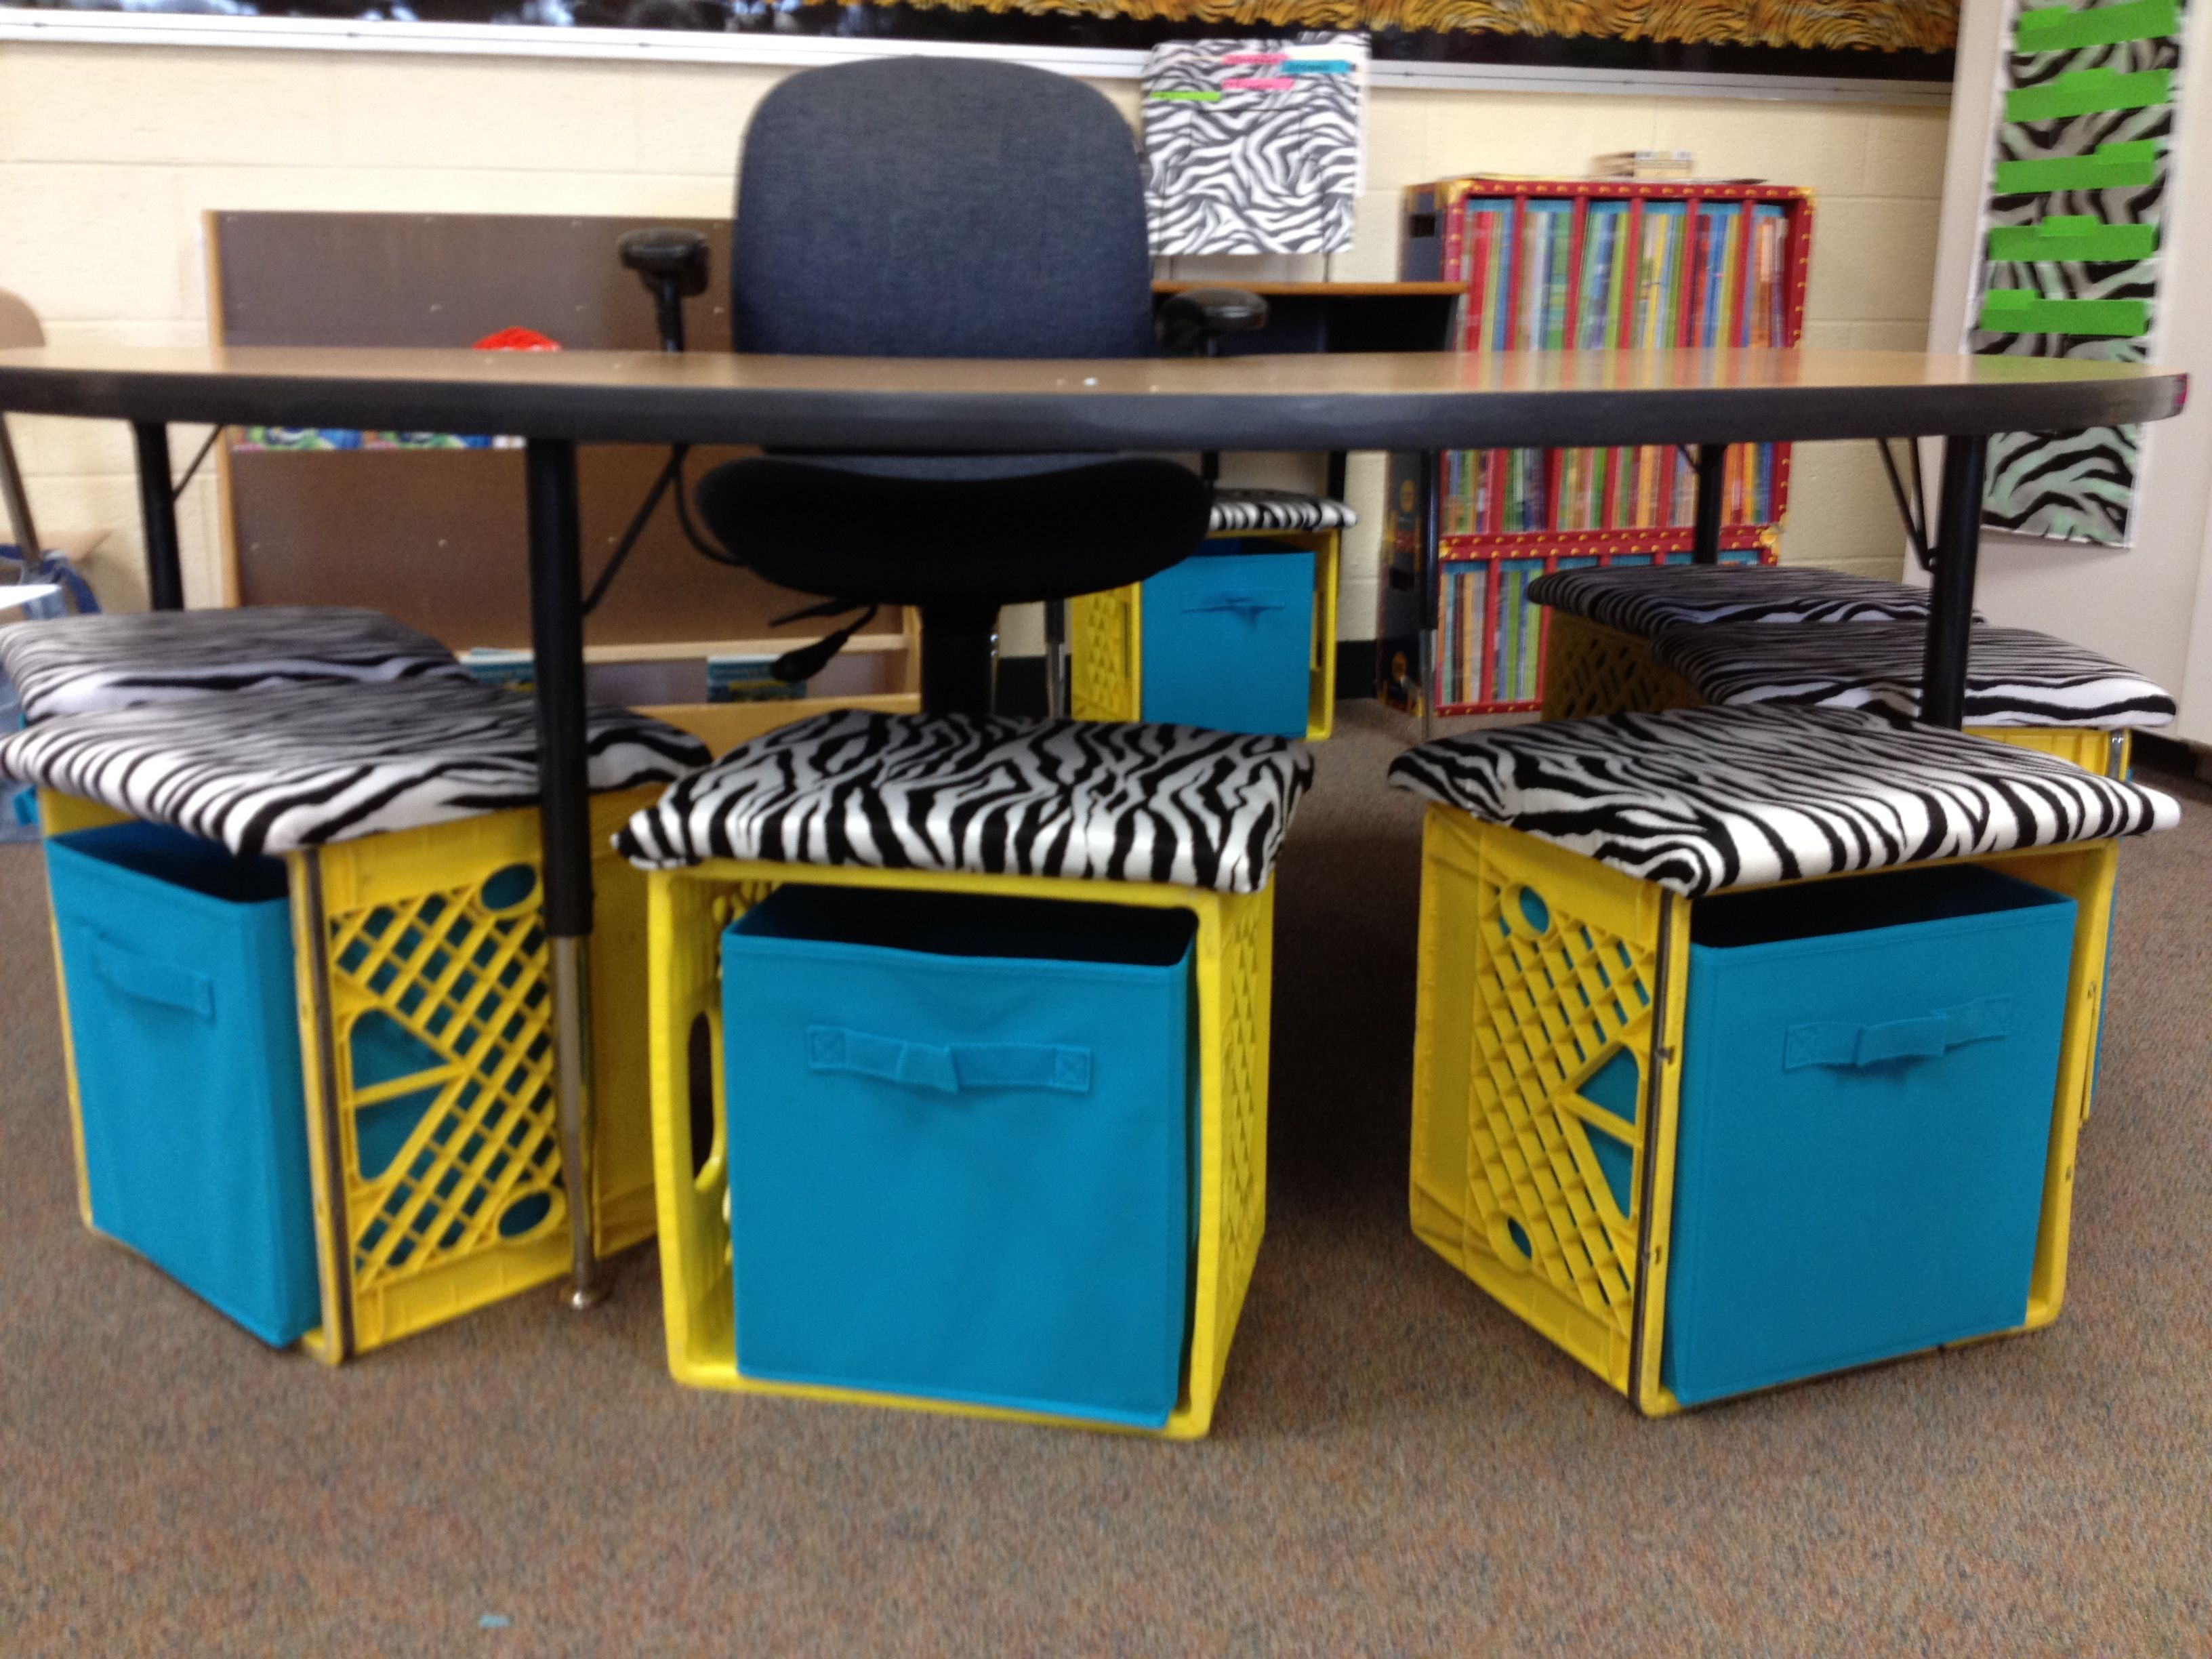 classroom organizer chair covers slipcovers dining chairs just a great idea mrs solis 39s kinder class seat crates